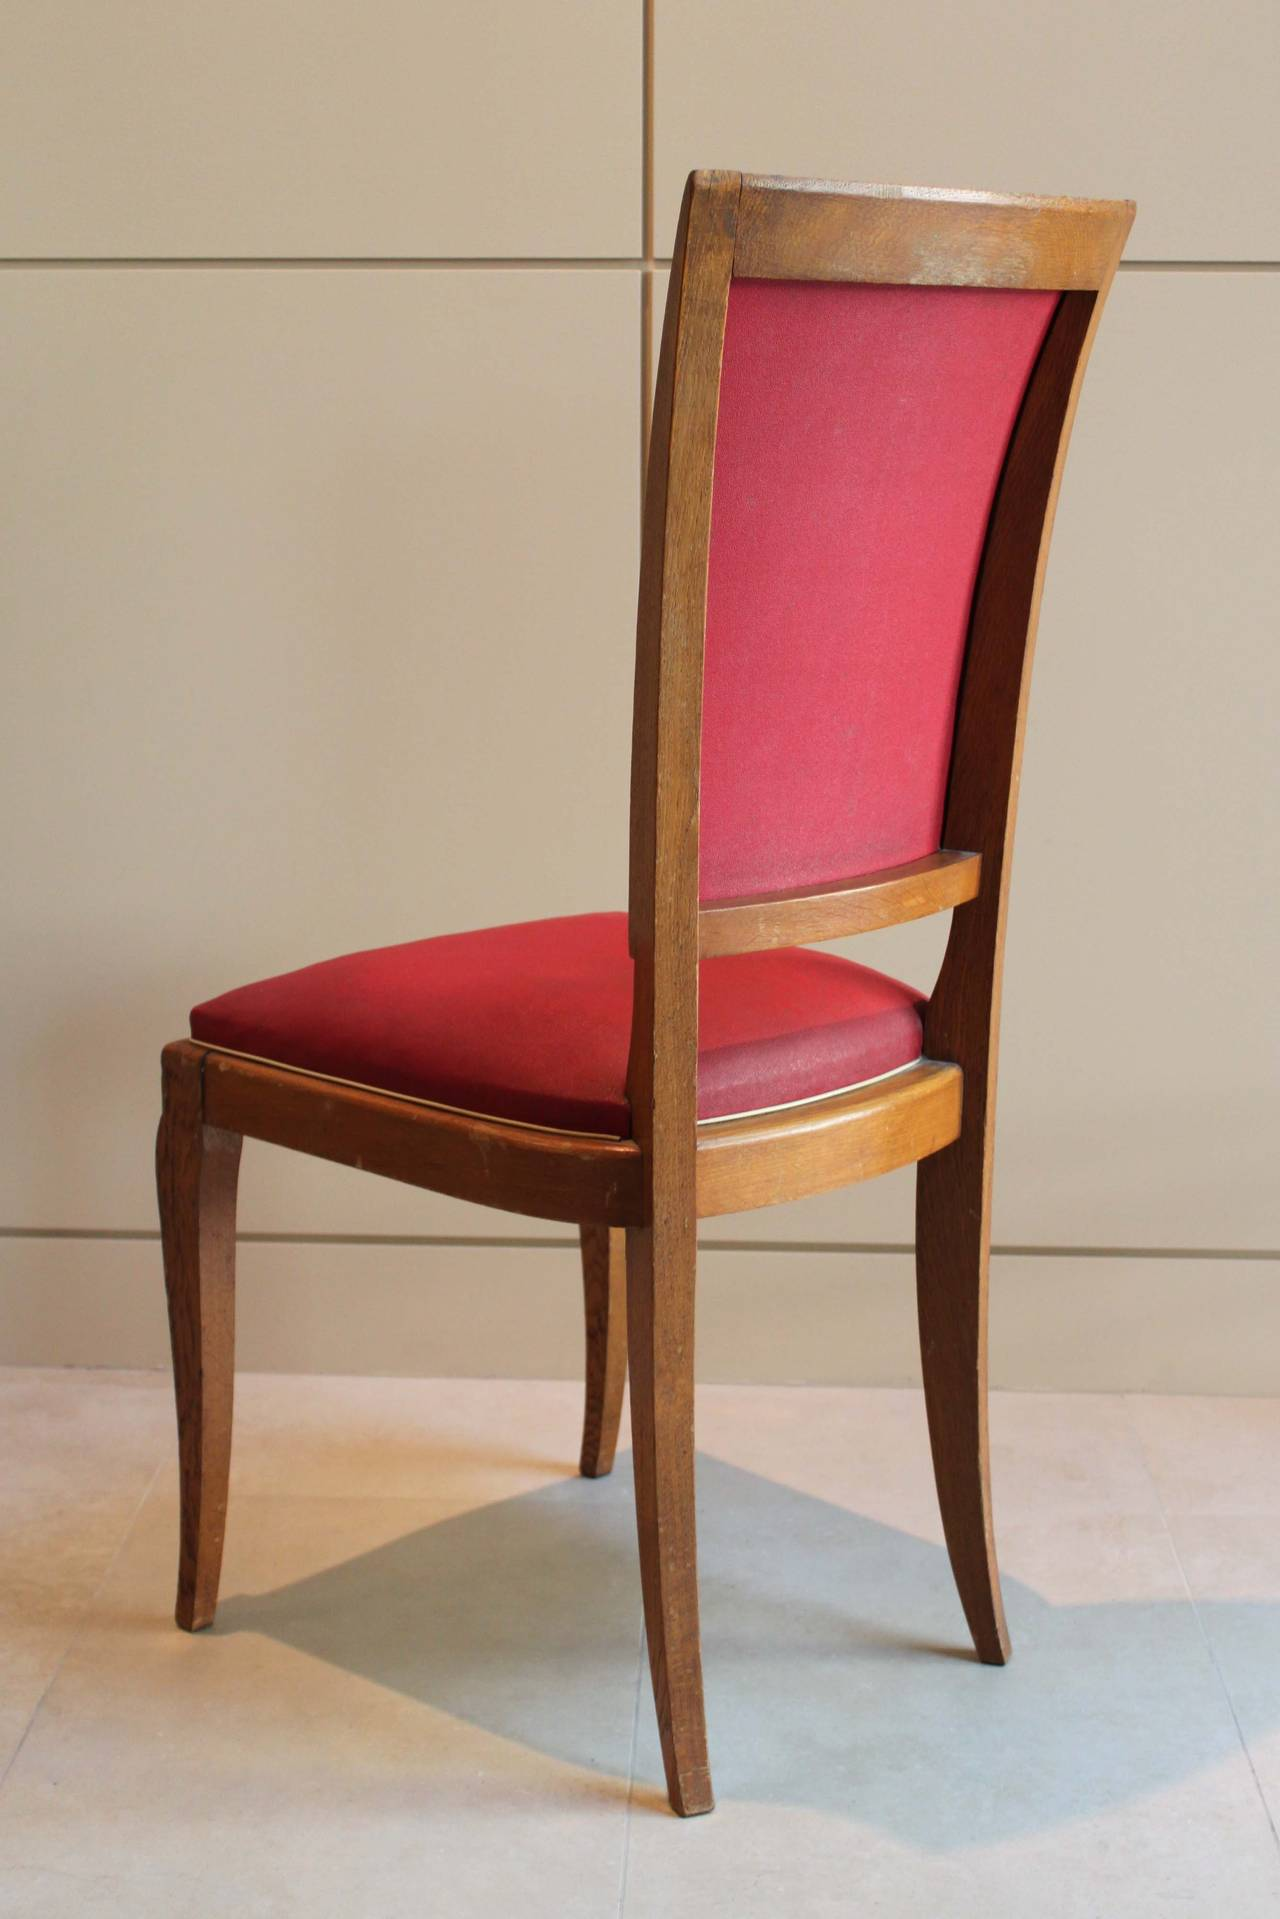 Set of six dining chairs in the Art Deco style, original condition. Solid construction, cabriolet and splayed legs. Vintage upholstery, unrestored.